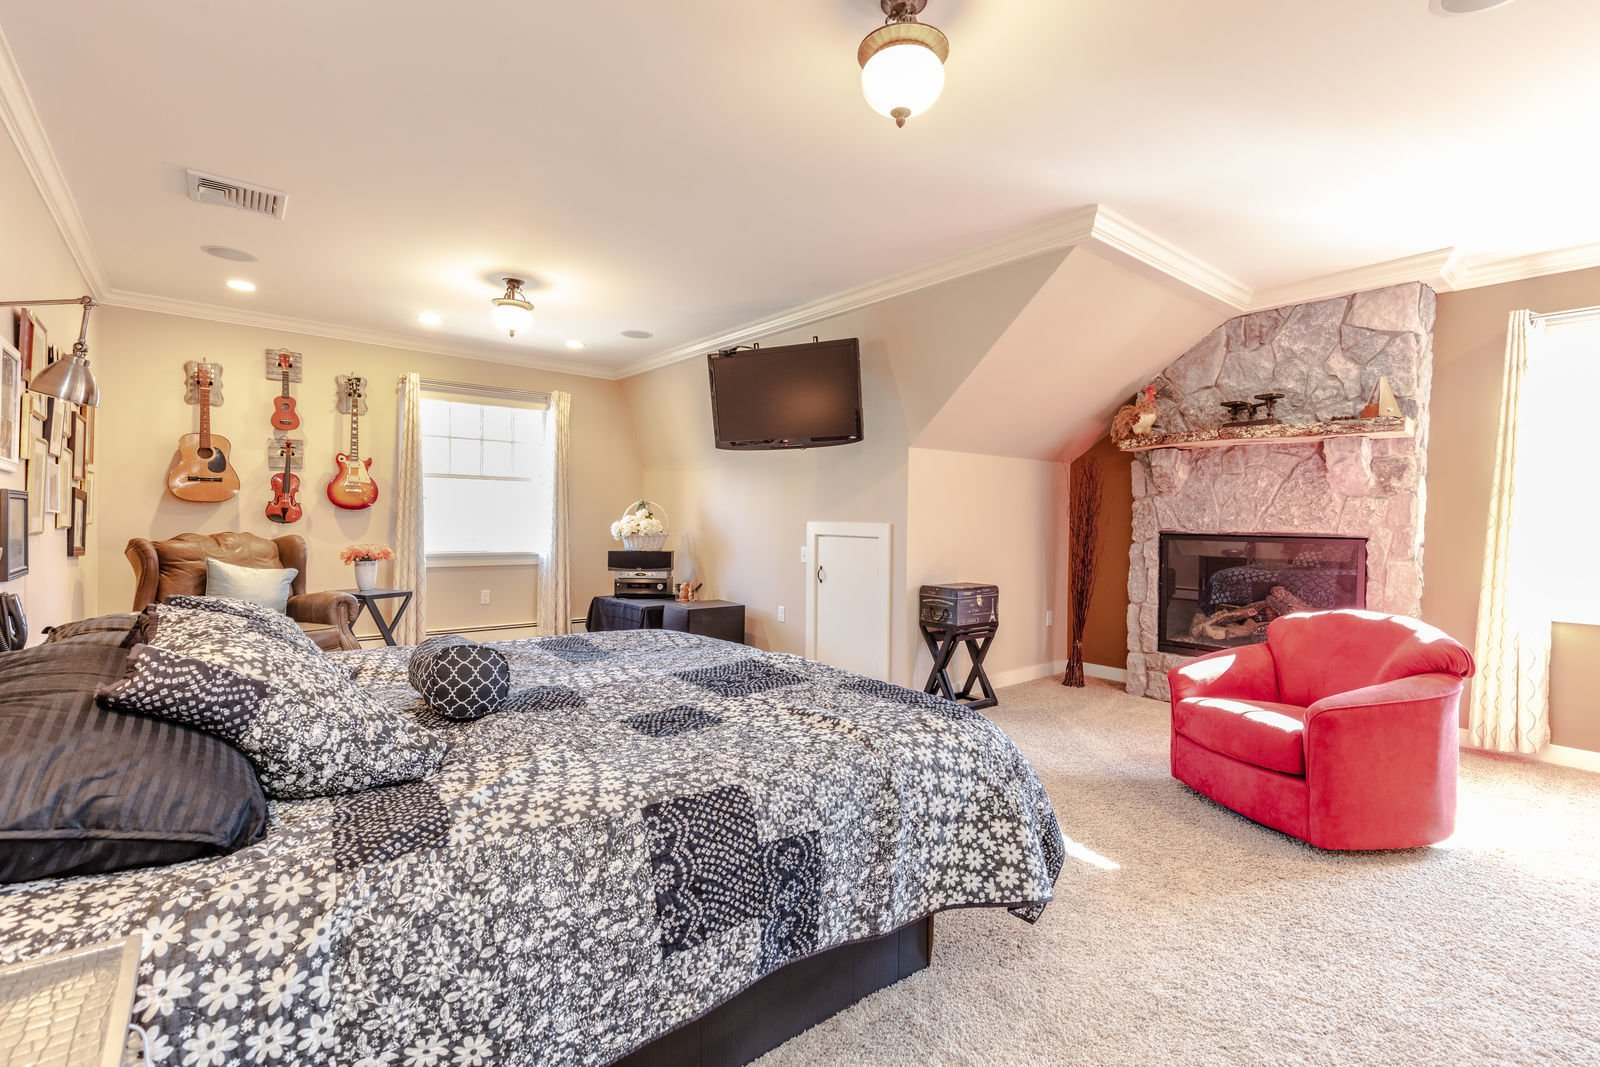 Bedroom, Bed, Ceiling Lighting, Recessed Lighting, and Chair  Shingle Style Rustic Chic